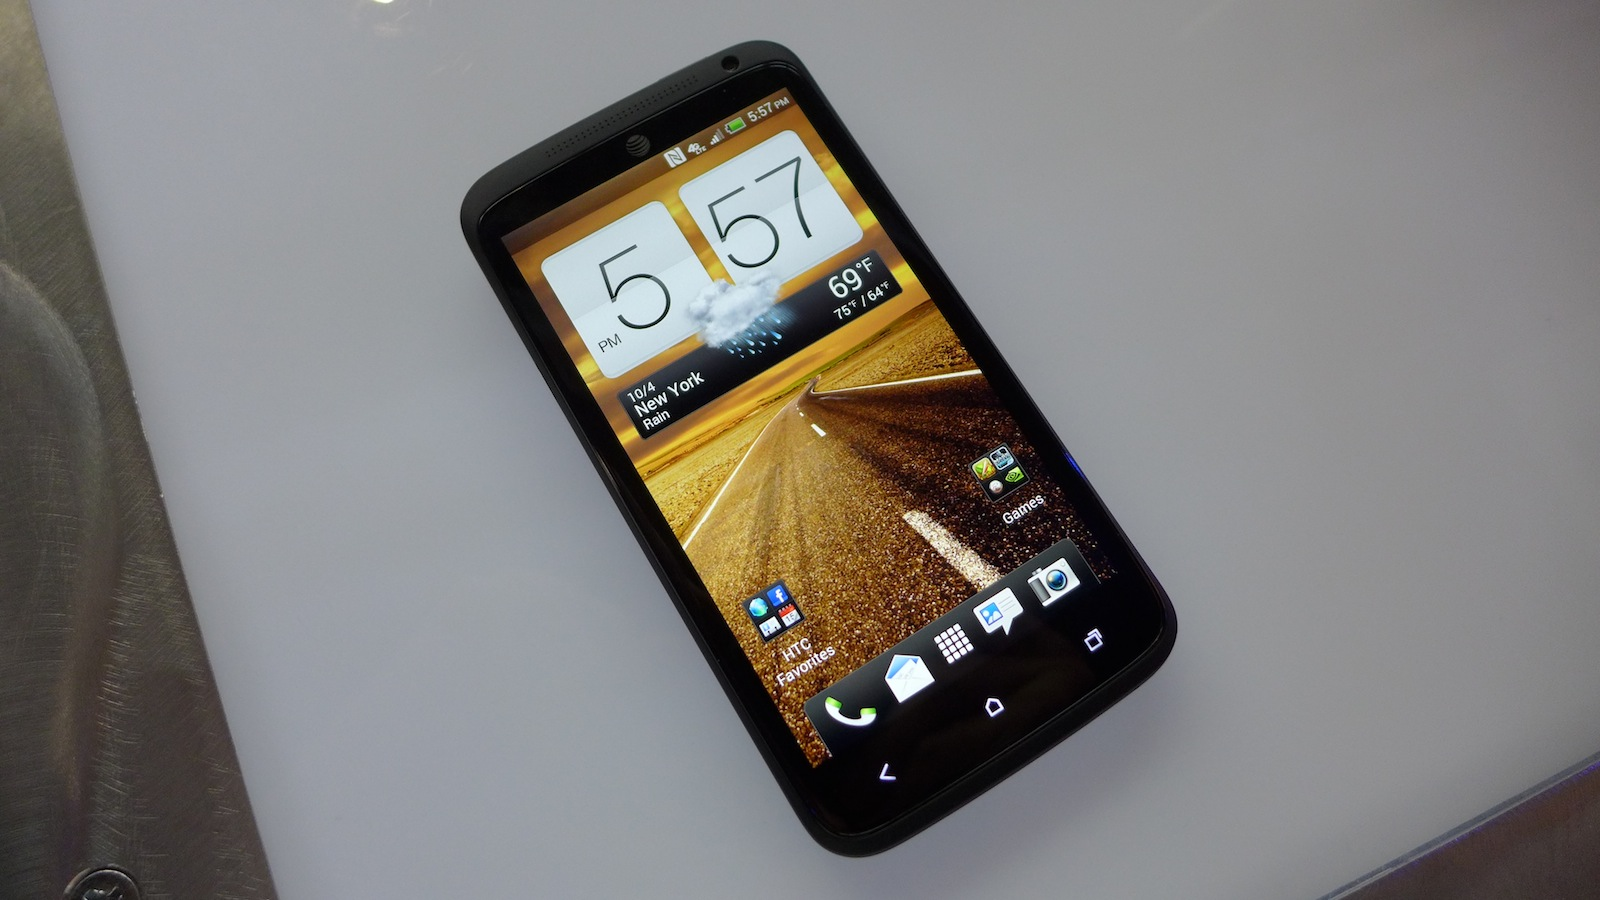 Click here to read HTC One X+ Hands-On: Really Good Is Getting Better